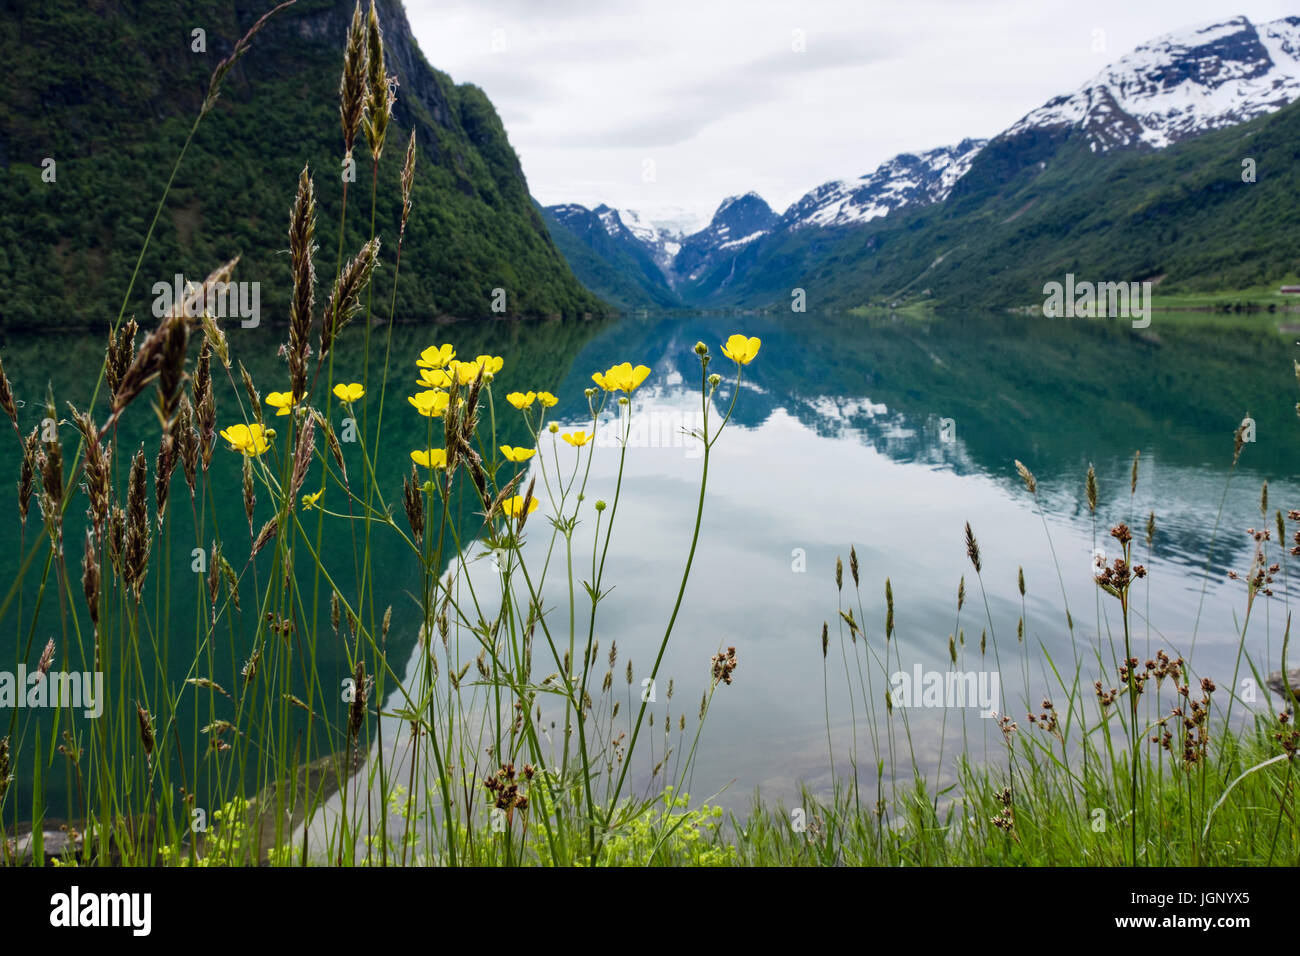 Reflections in Oldevatnet lake with Buttercups and grasses growing on the shore. Olden, Oldedalen valley, Sogn og - Stock Image